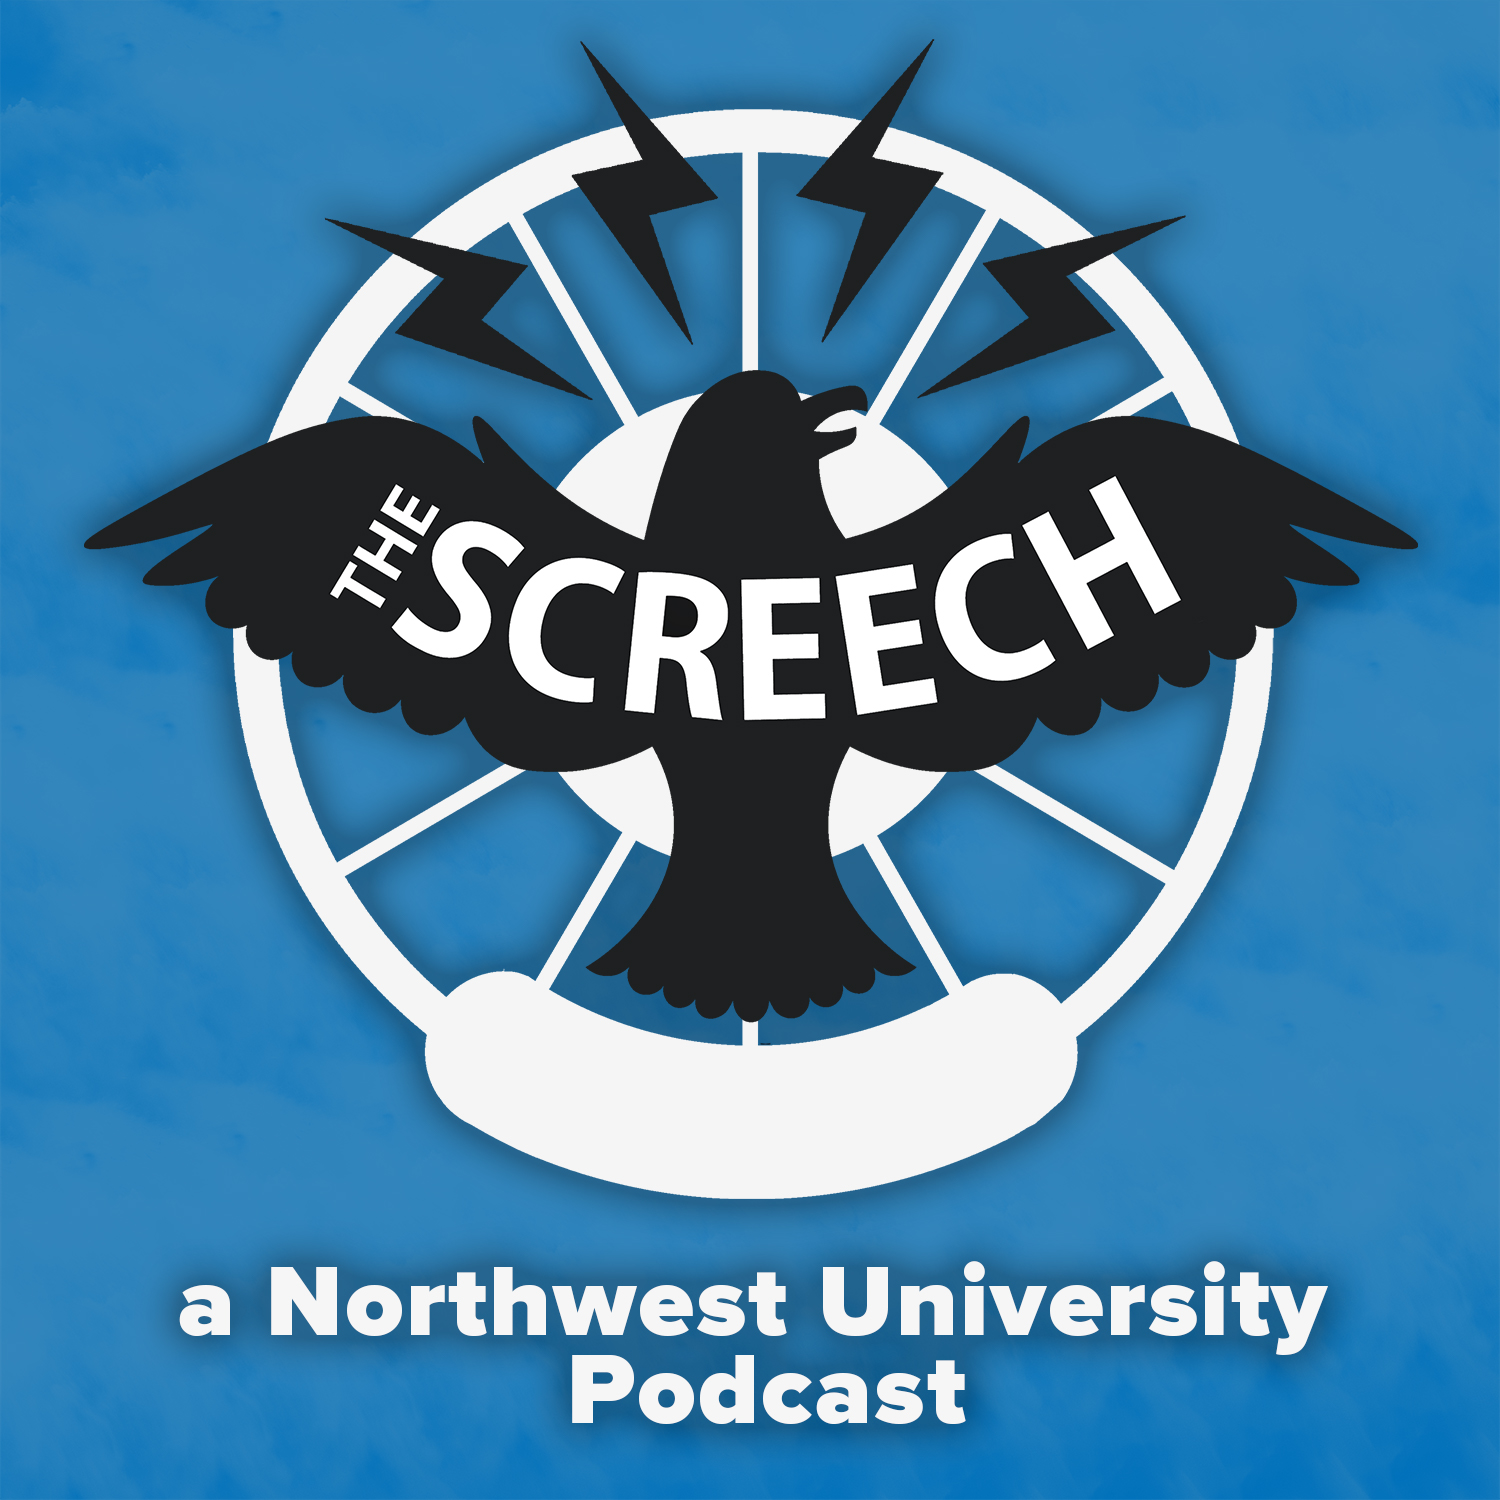 The Screech Ep 9: Healthy Relationships with Dr. Renee Bourdeaux